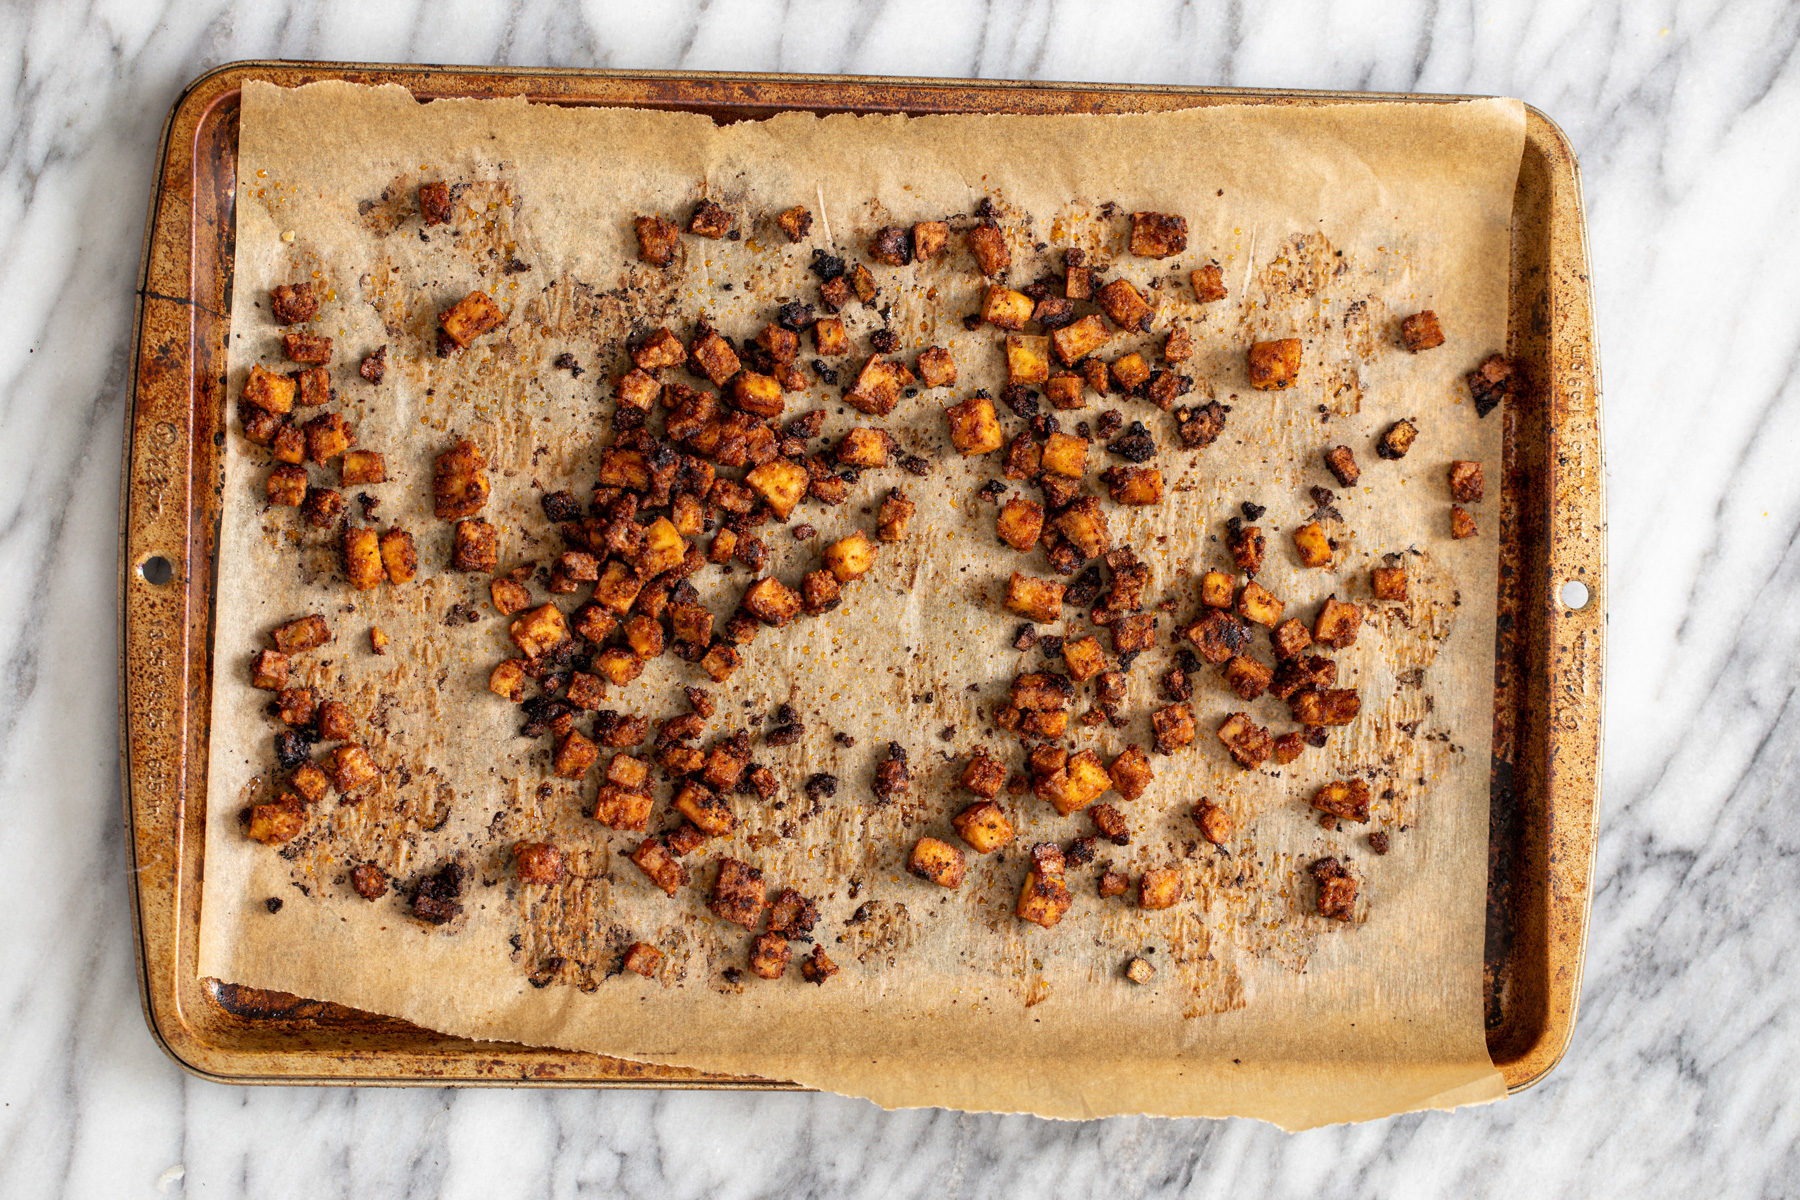 crispy smokey oven roasted tofu cubes on a baking sheet